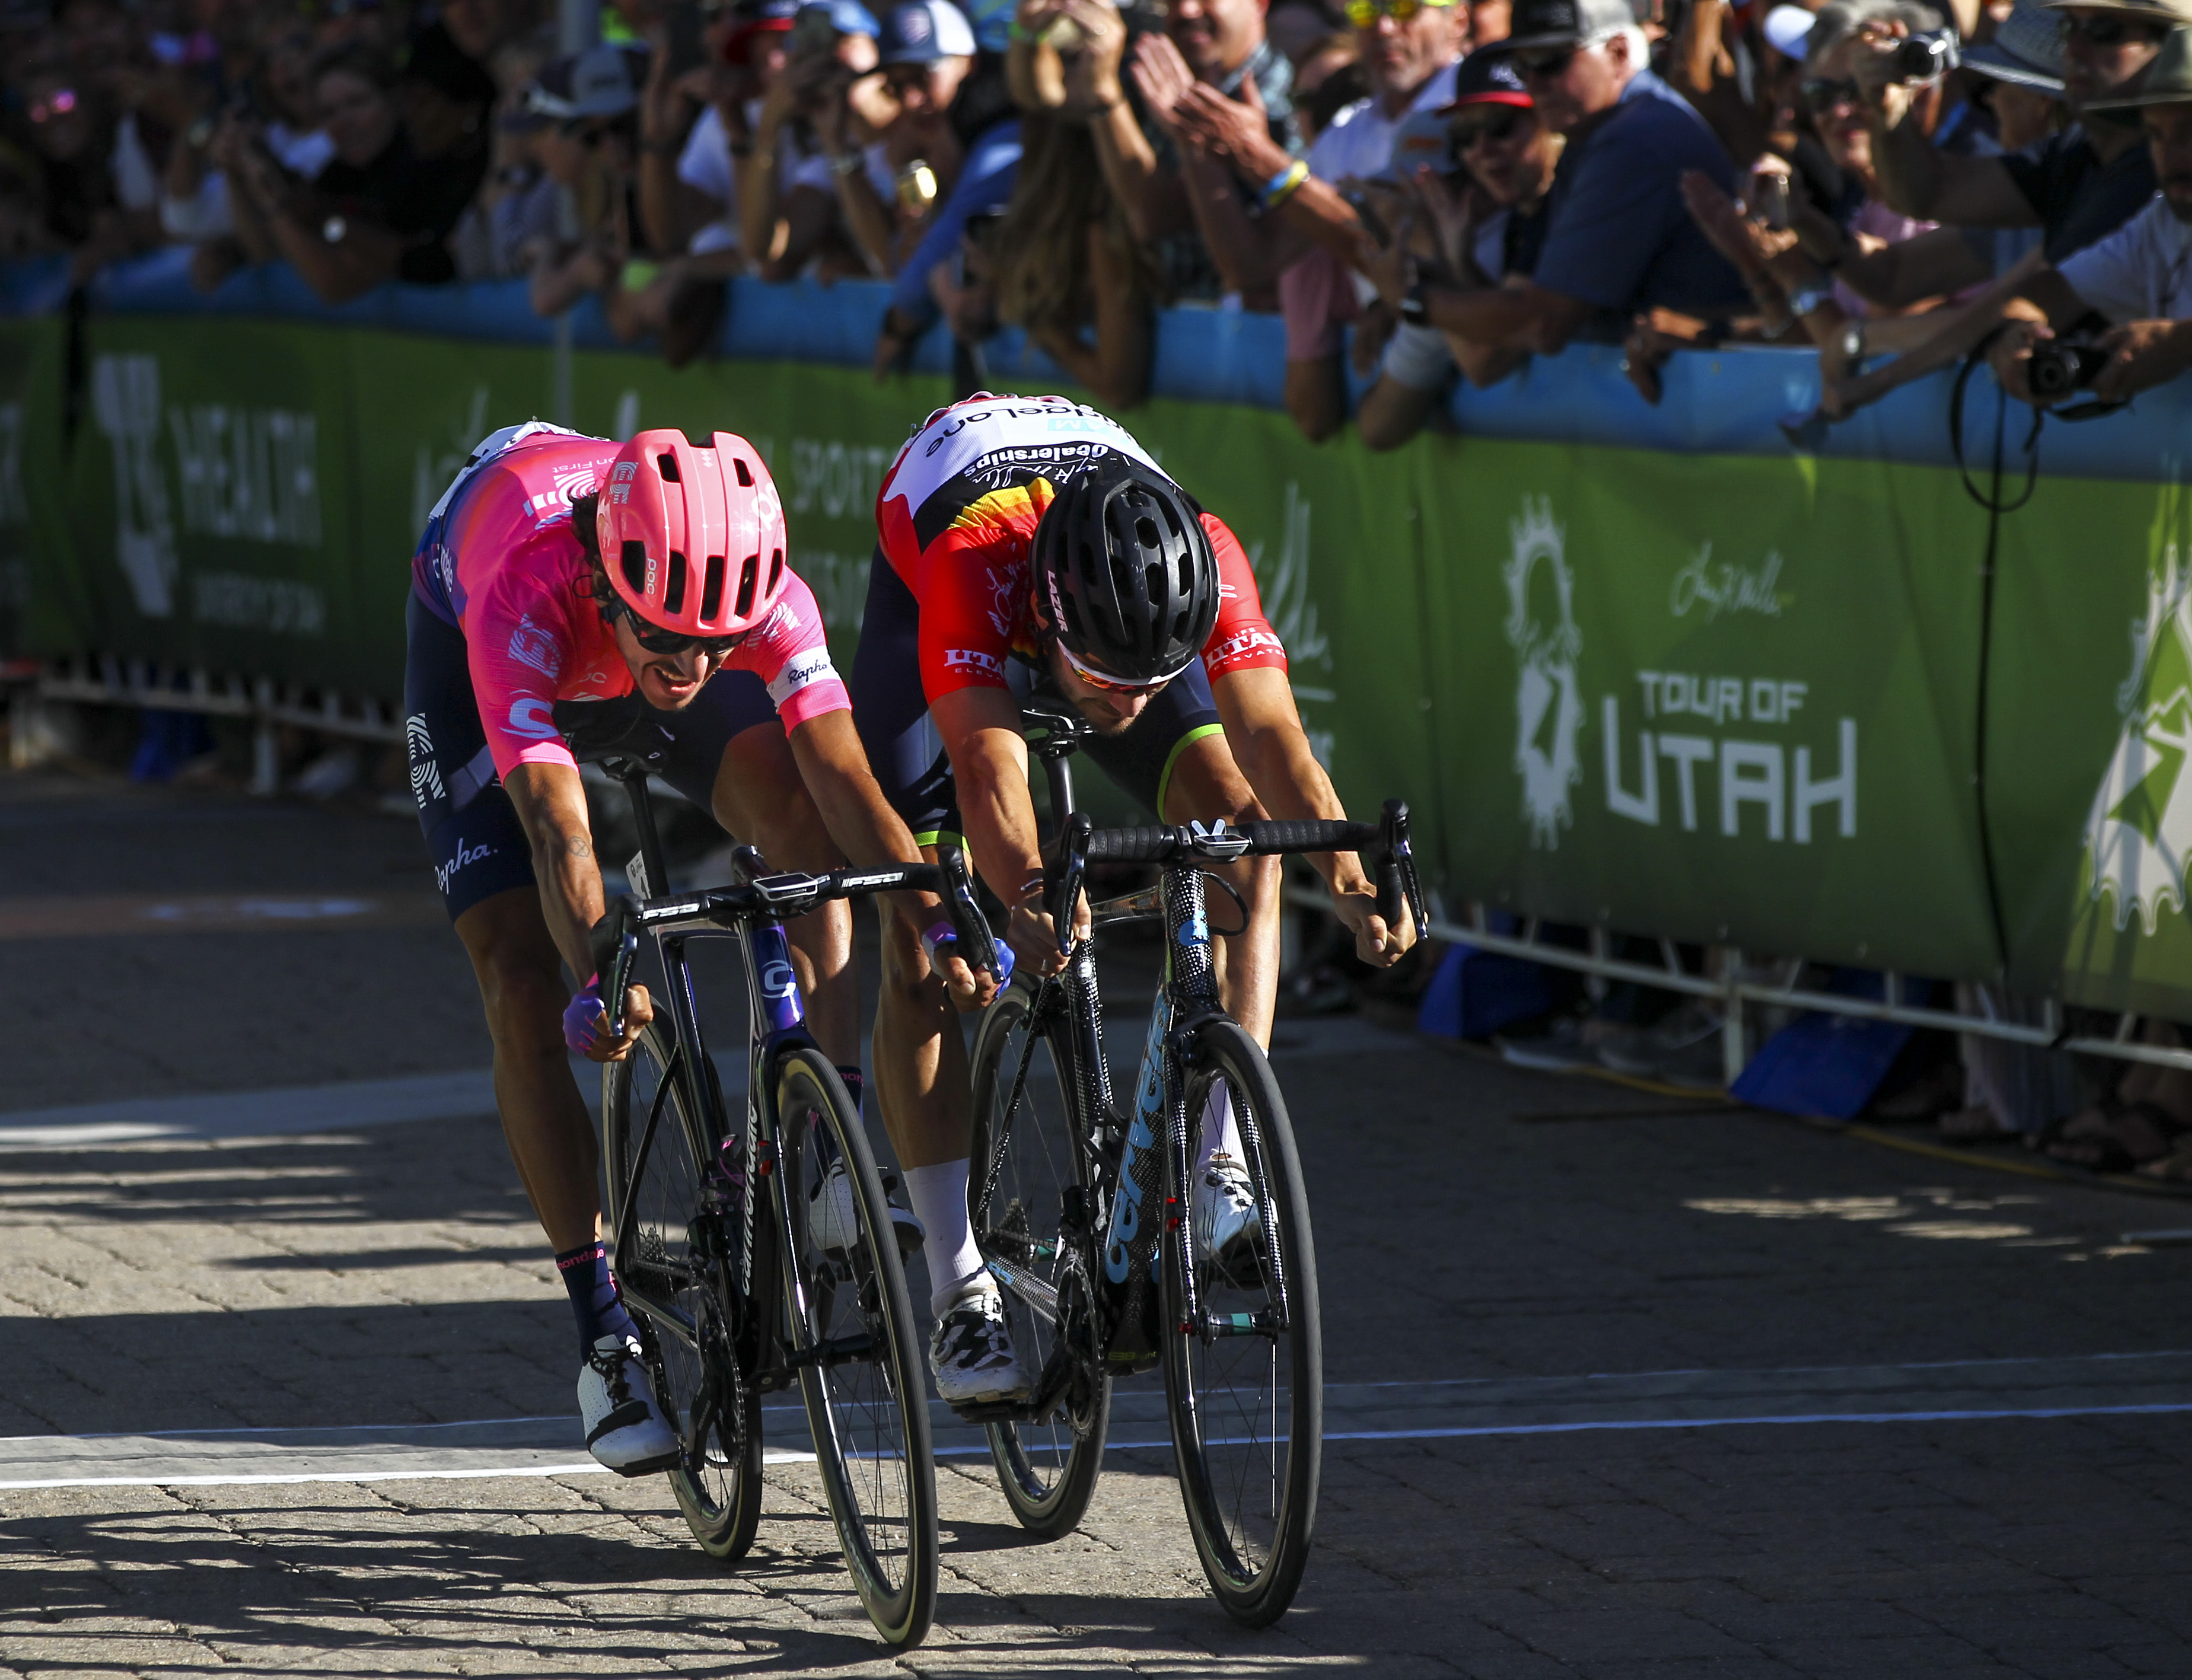 Lachlan Morton, left, just outstretches Hayden McCormick at the finish line of Stage 5 in the Tour of Utah at Canyons Village in Park City on Saturday, Aug. 17, 2019. Morton and McCormick were part of a breakaway group through most of the day.